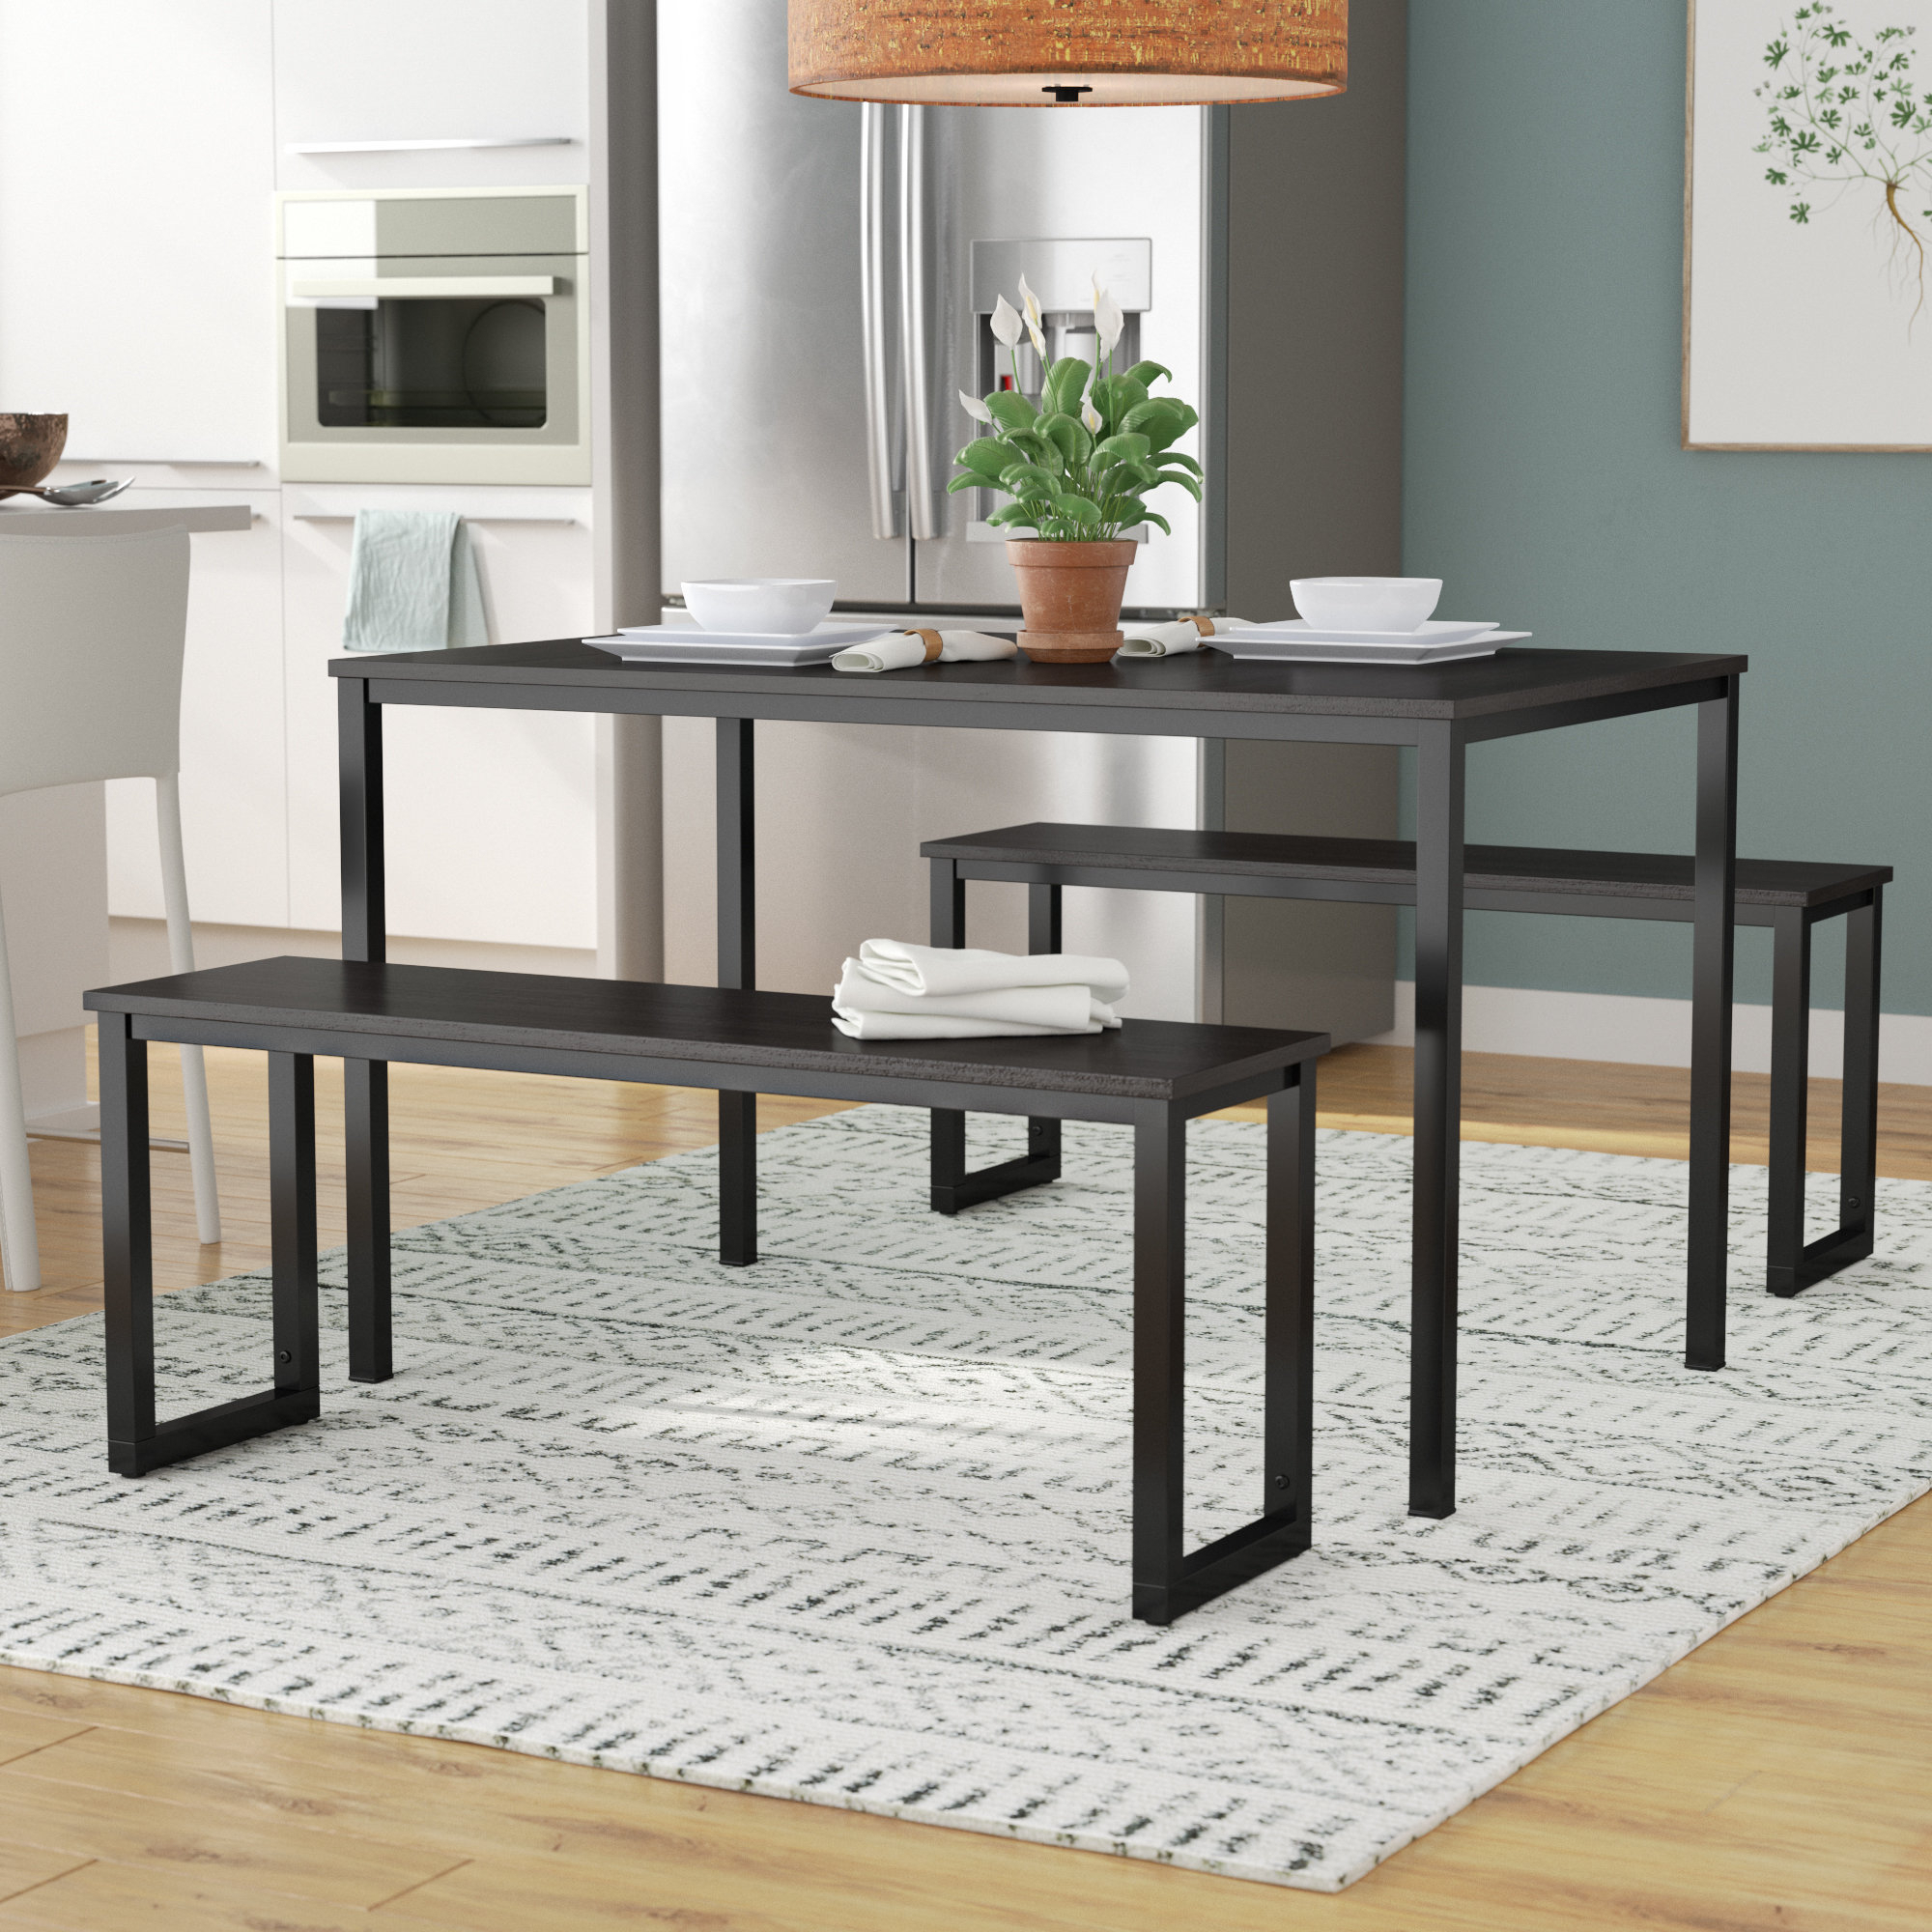 Wayfair Inside Most Recent Ryker 3 Piece Dining Sets (View 3 of 25)